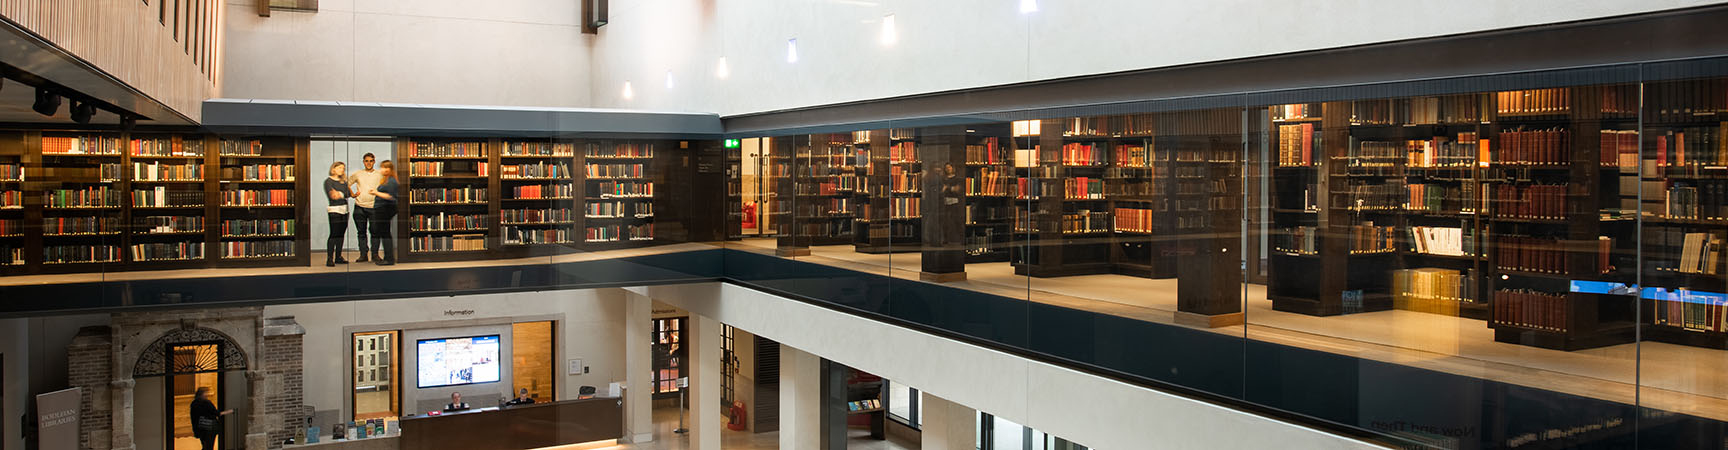 A two-storey height room with a glass mezzanine filled with bookshelves